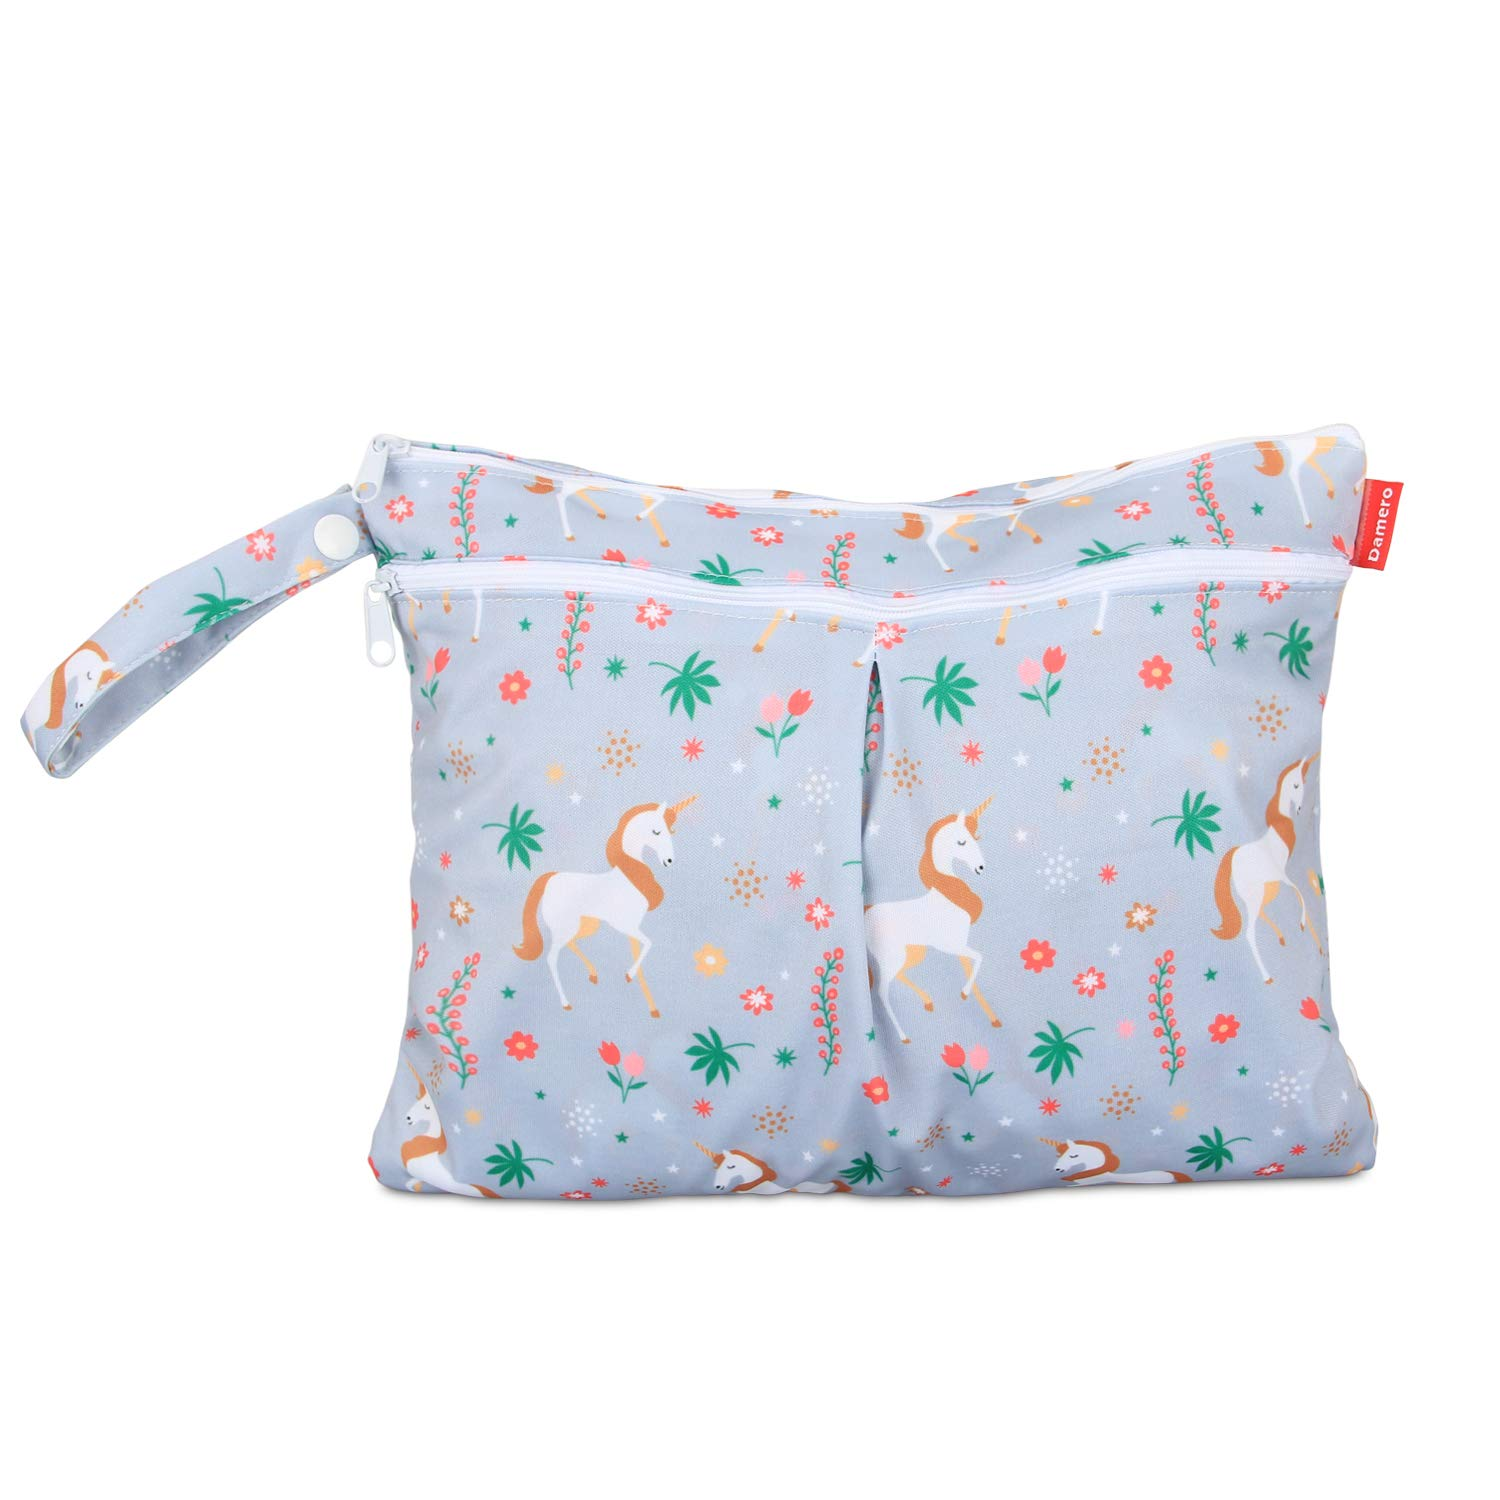 Travel Wet and Dry Bag with Handle for Cloth Diaper Large,Cats Clothes Pumping Parts Swimsuit and More Reusable and Water-resistant Damero Cloth Diaper Wet Dry Bags